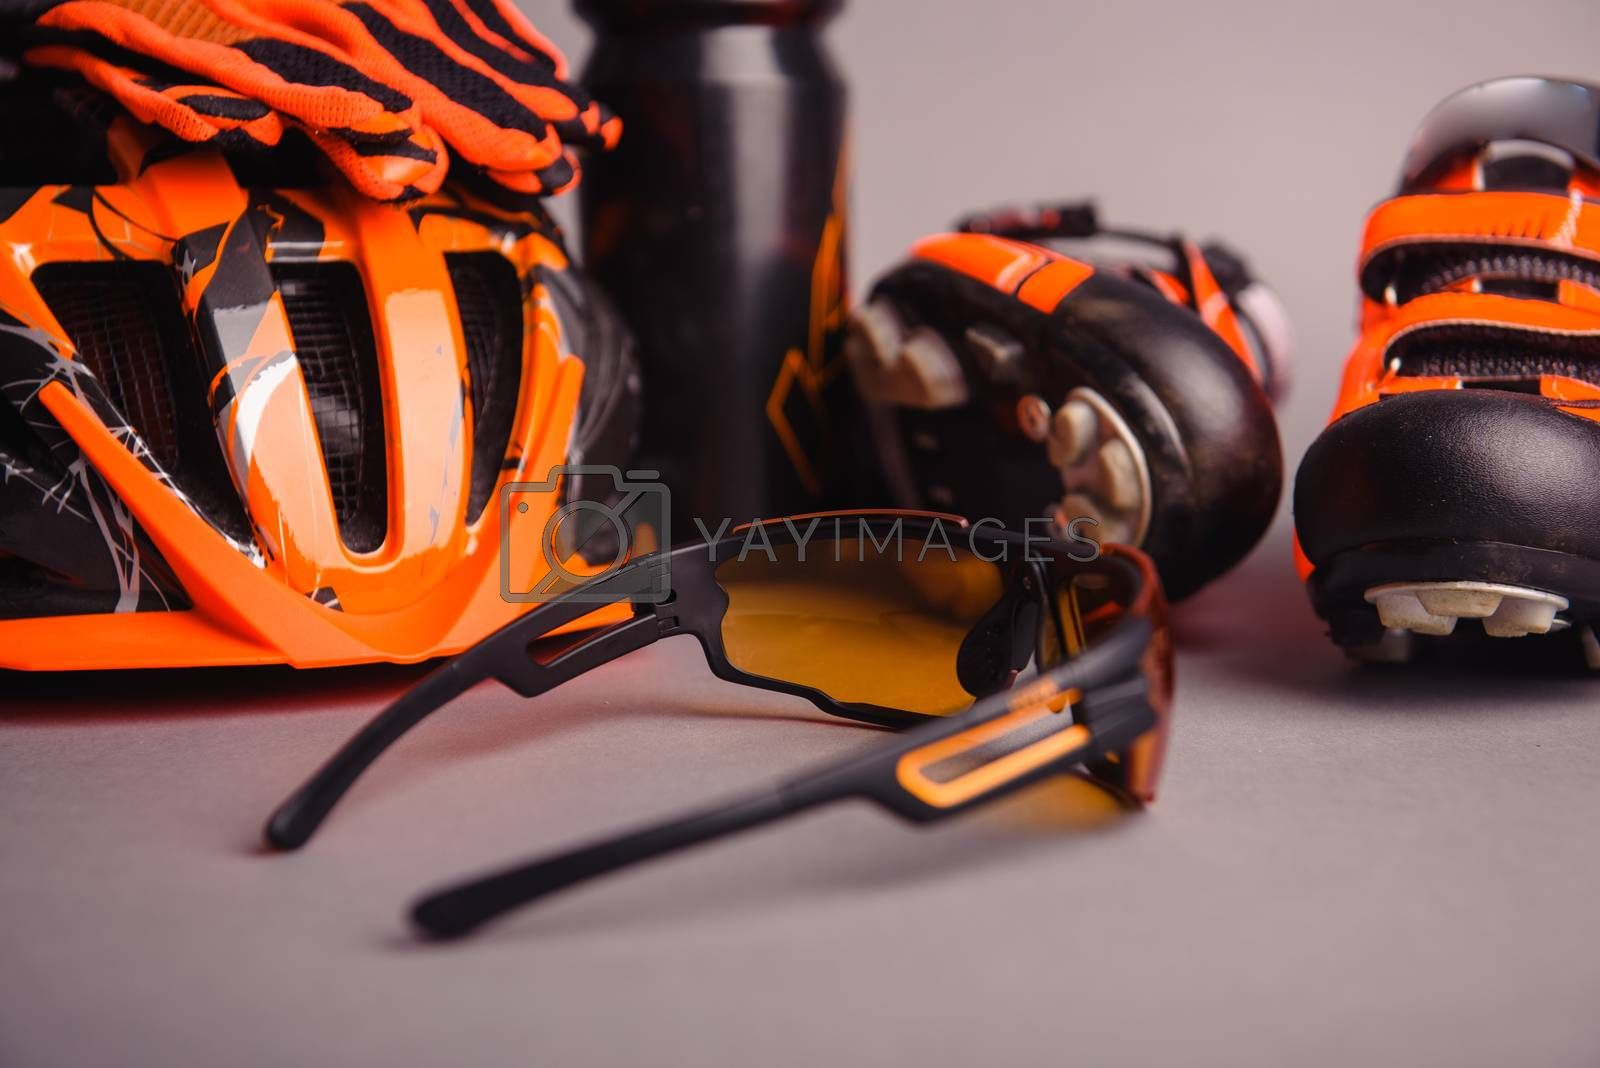 Helmet, gloves and water bottle - bicycle accessories by Brejeq